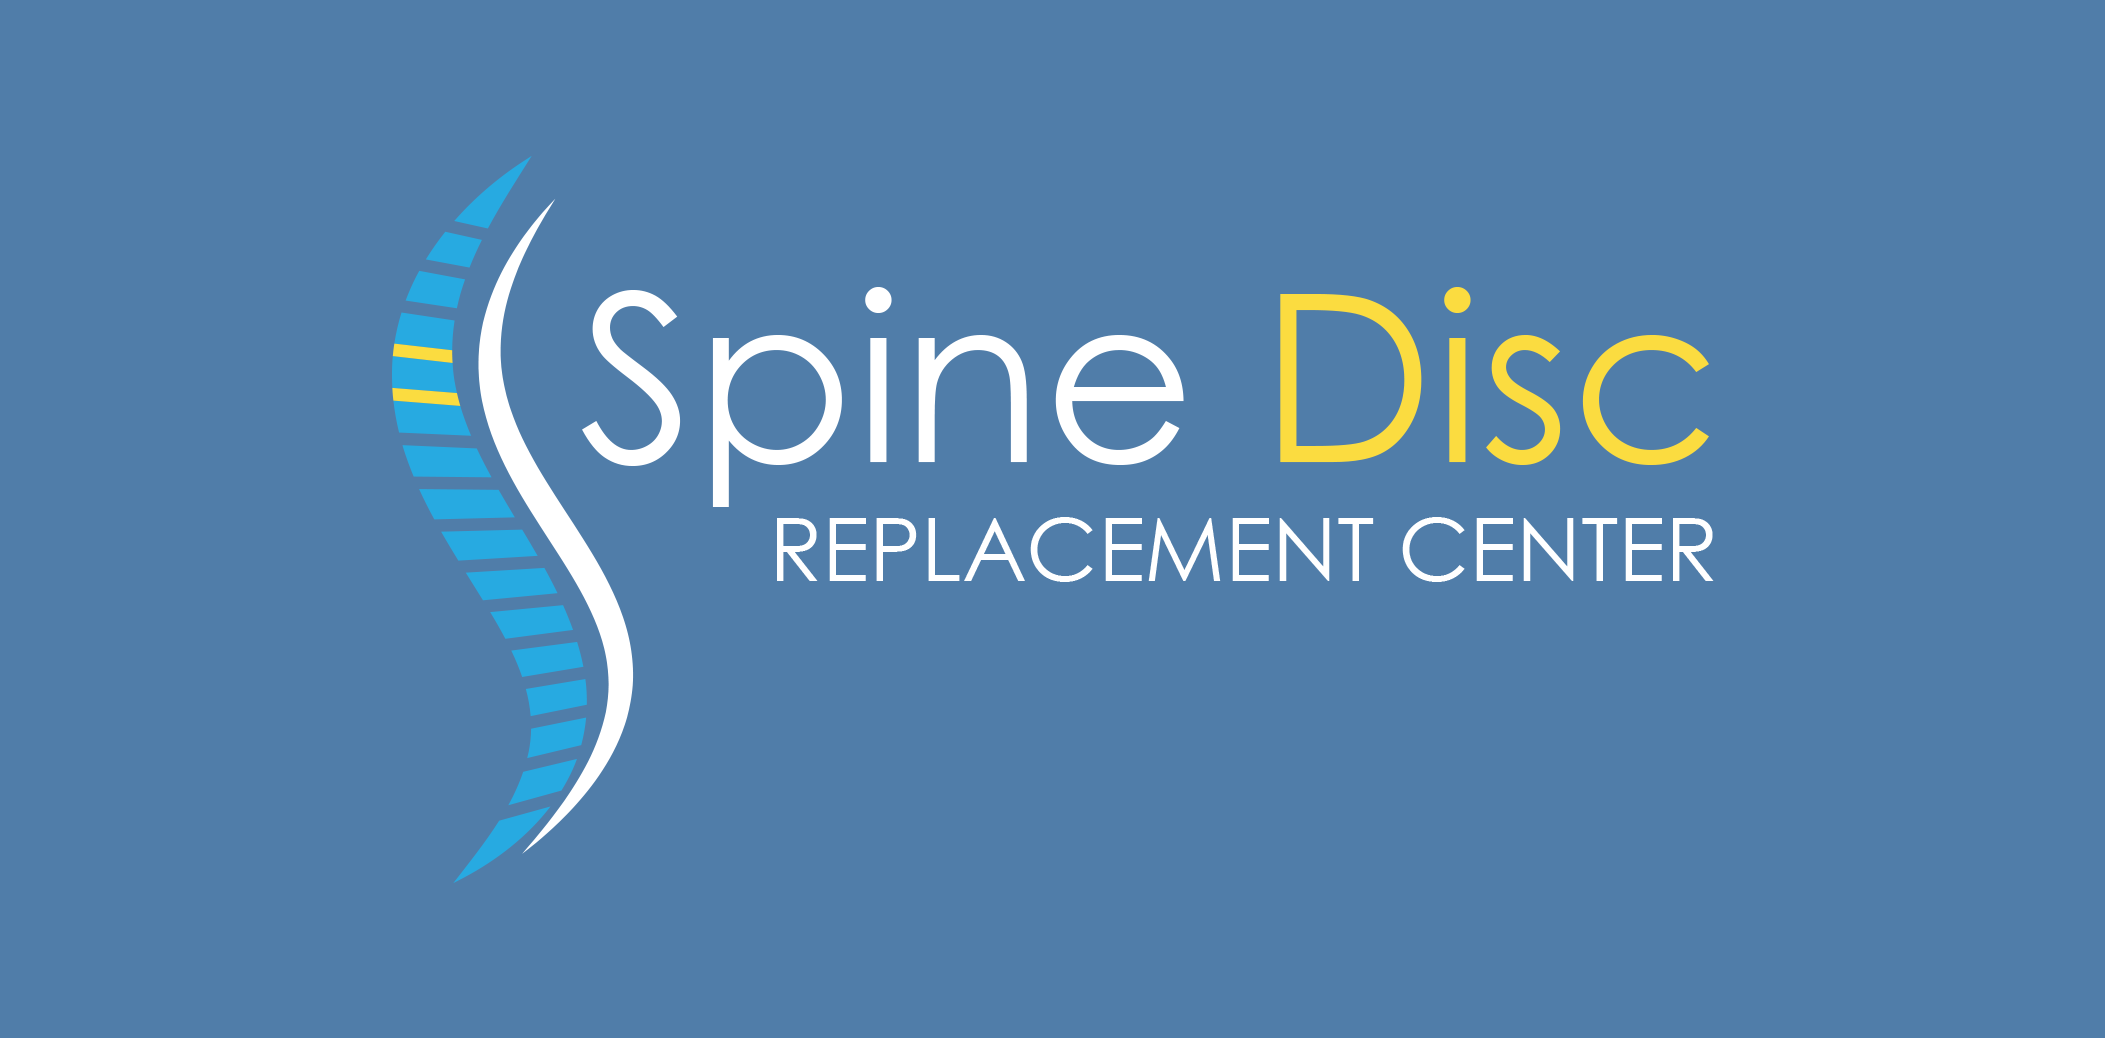 Spine Disc Replacement Center image 0